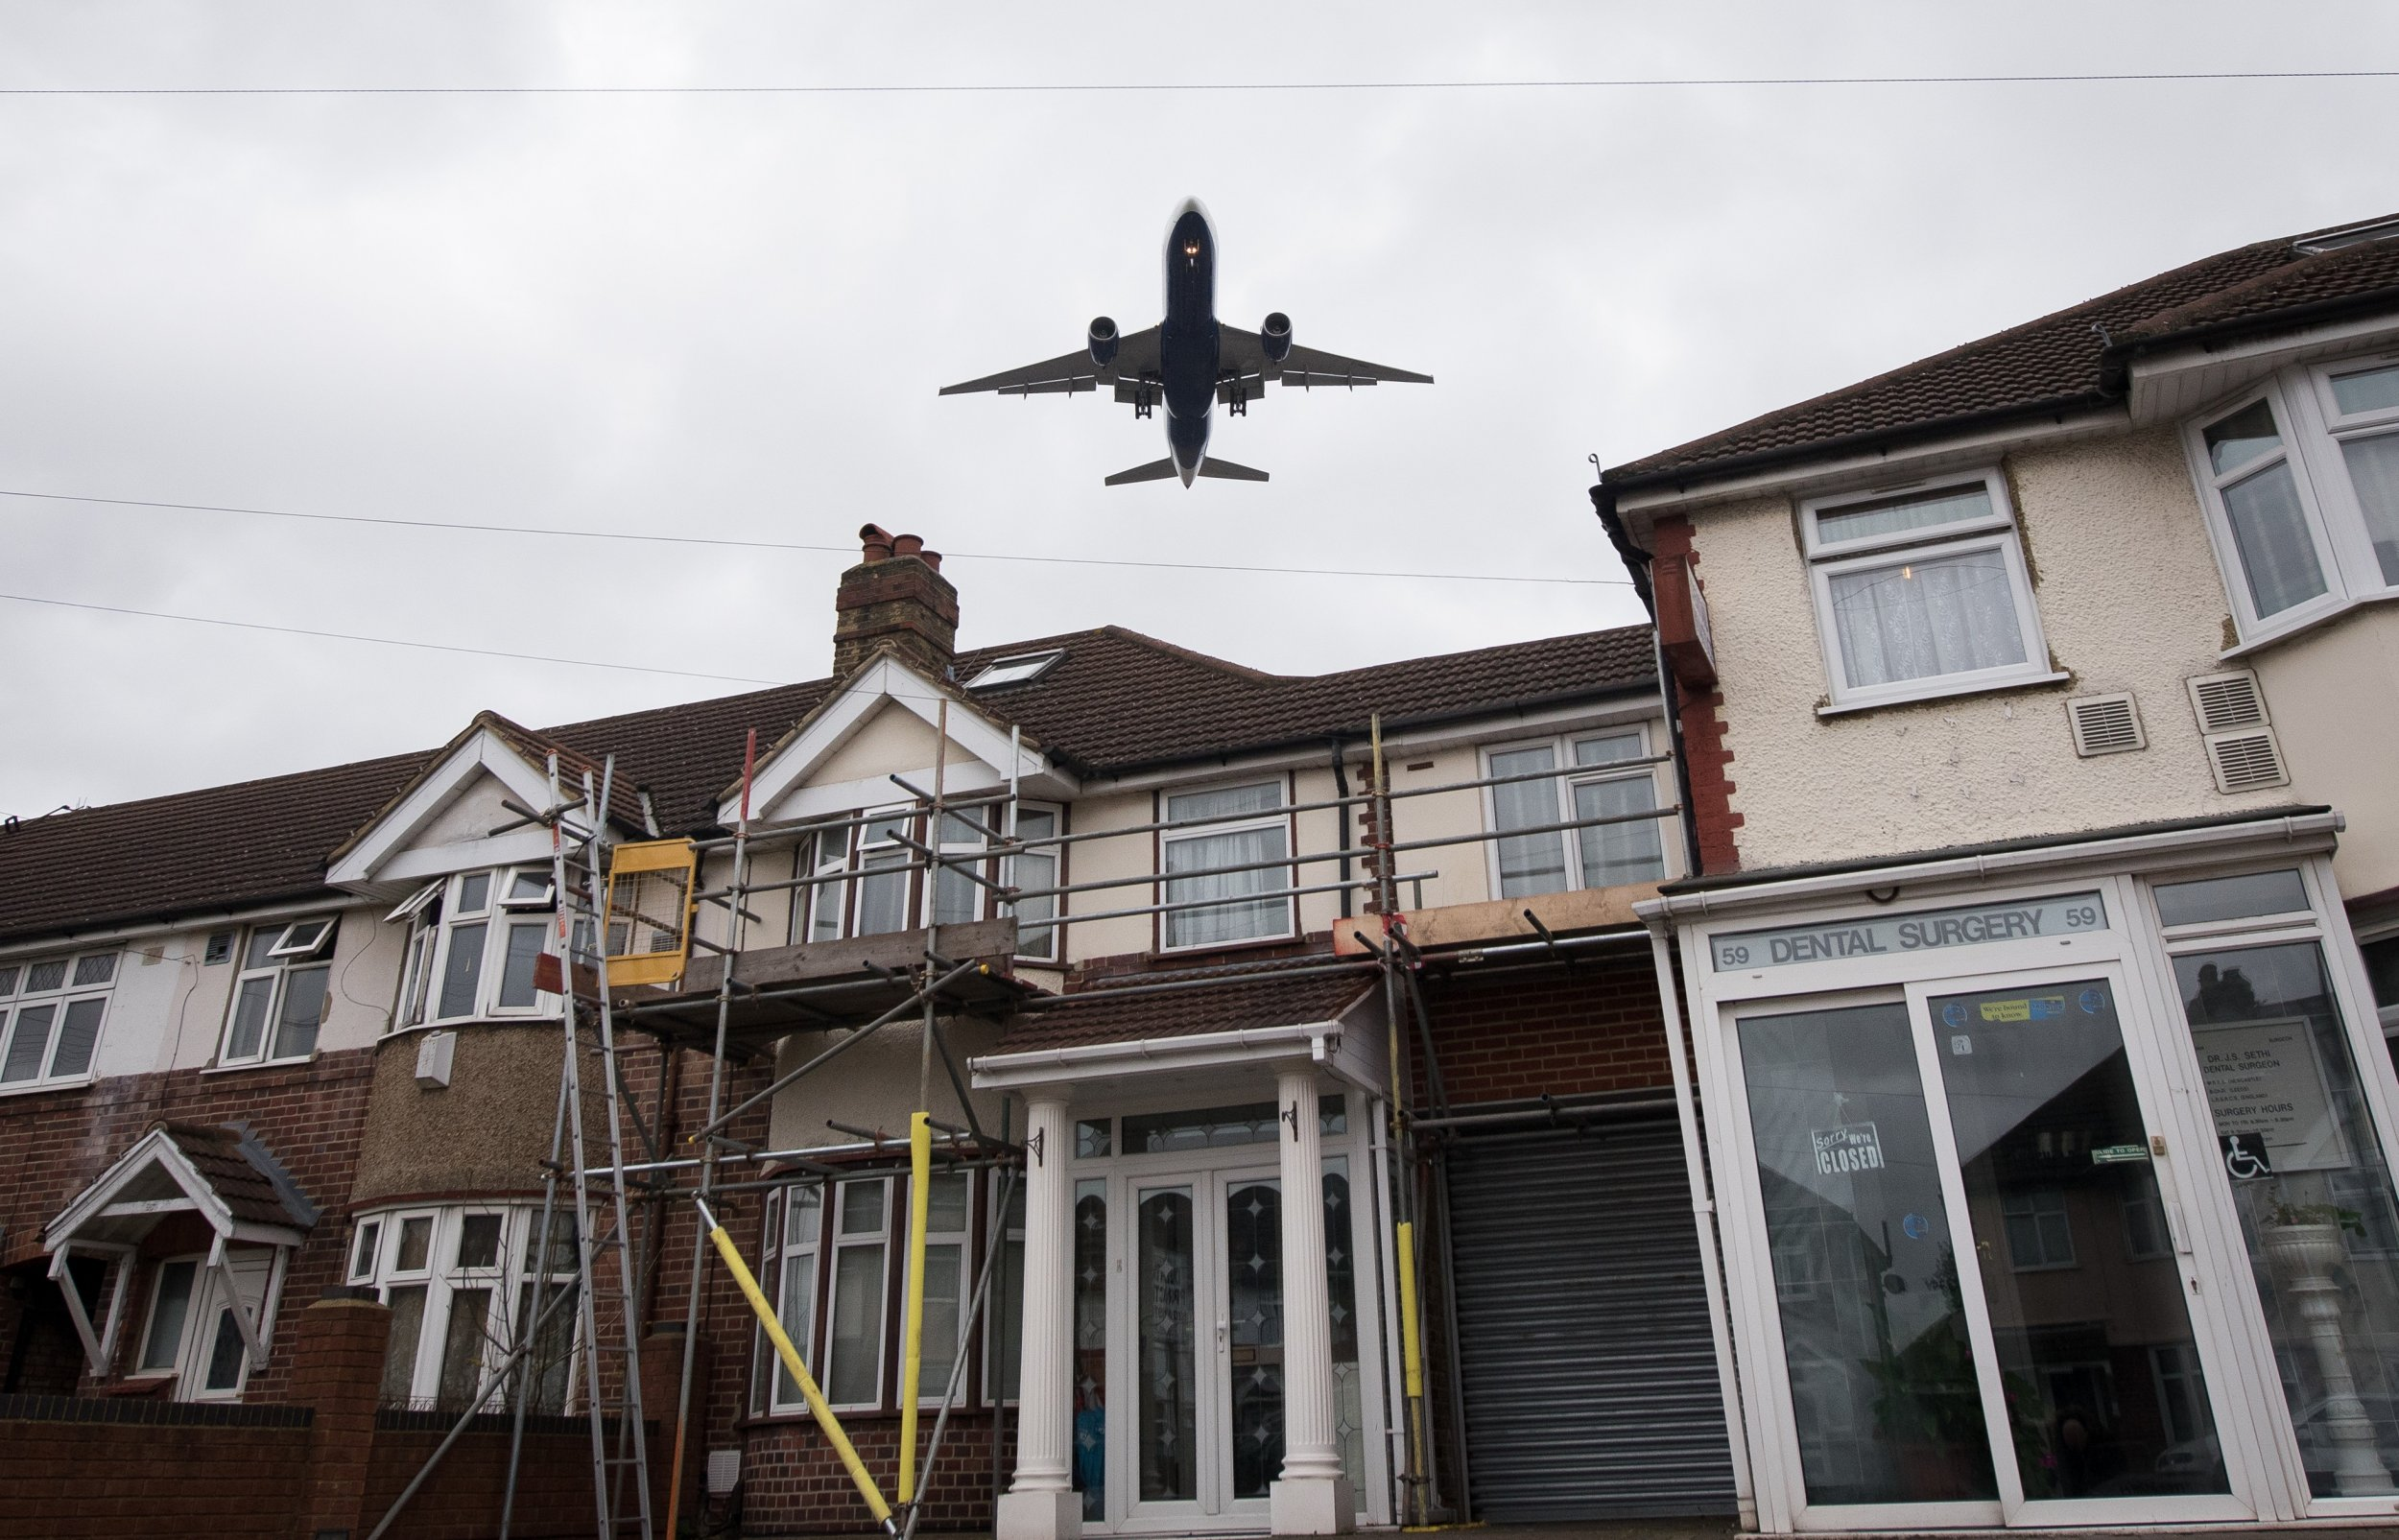 Aircraft Heathrow Expansion